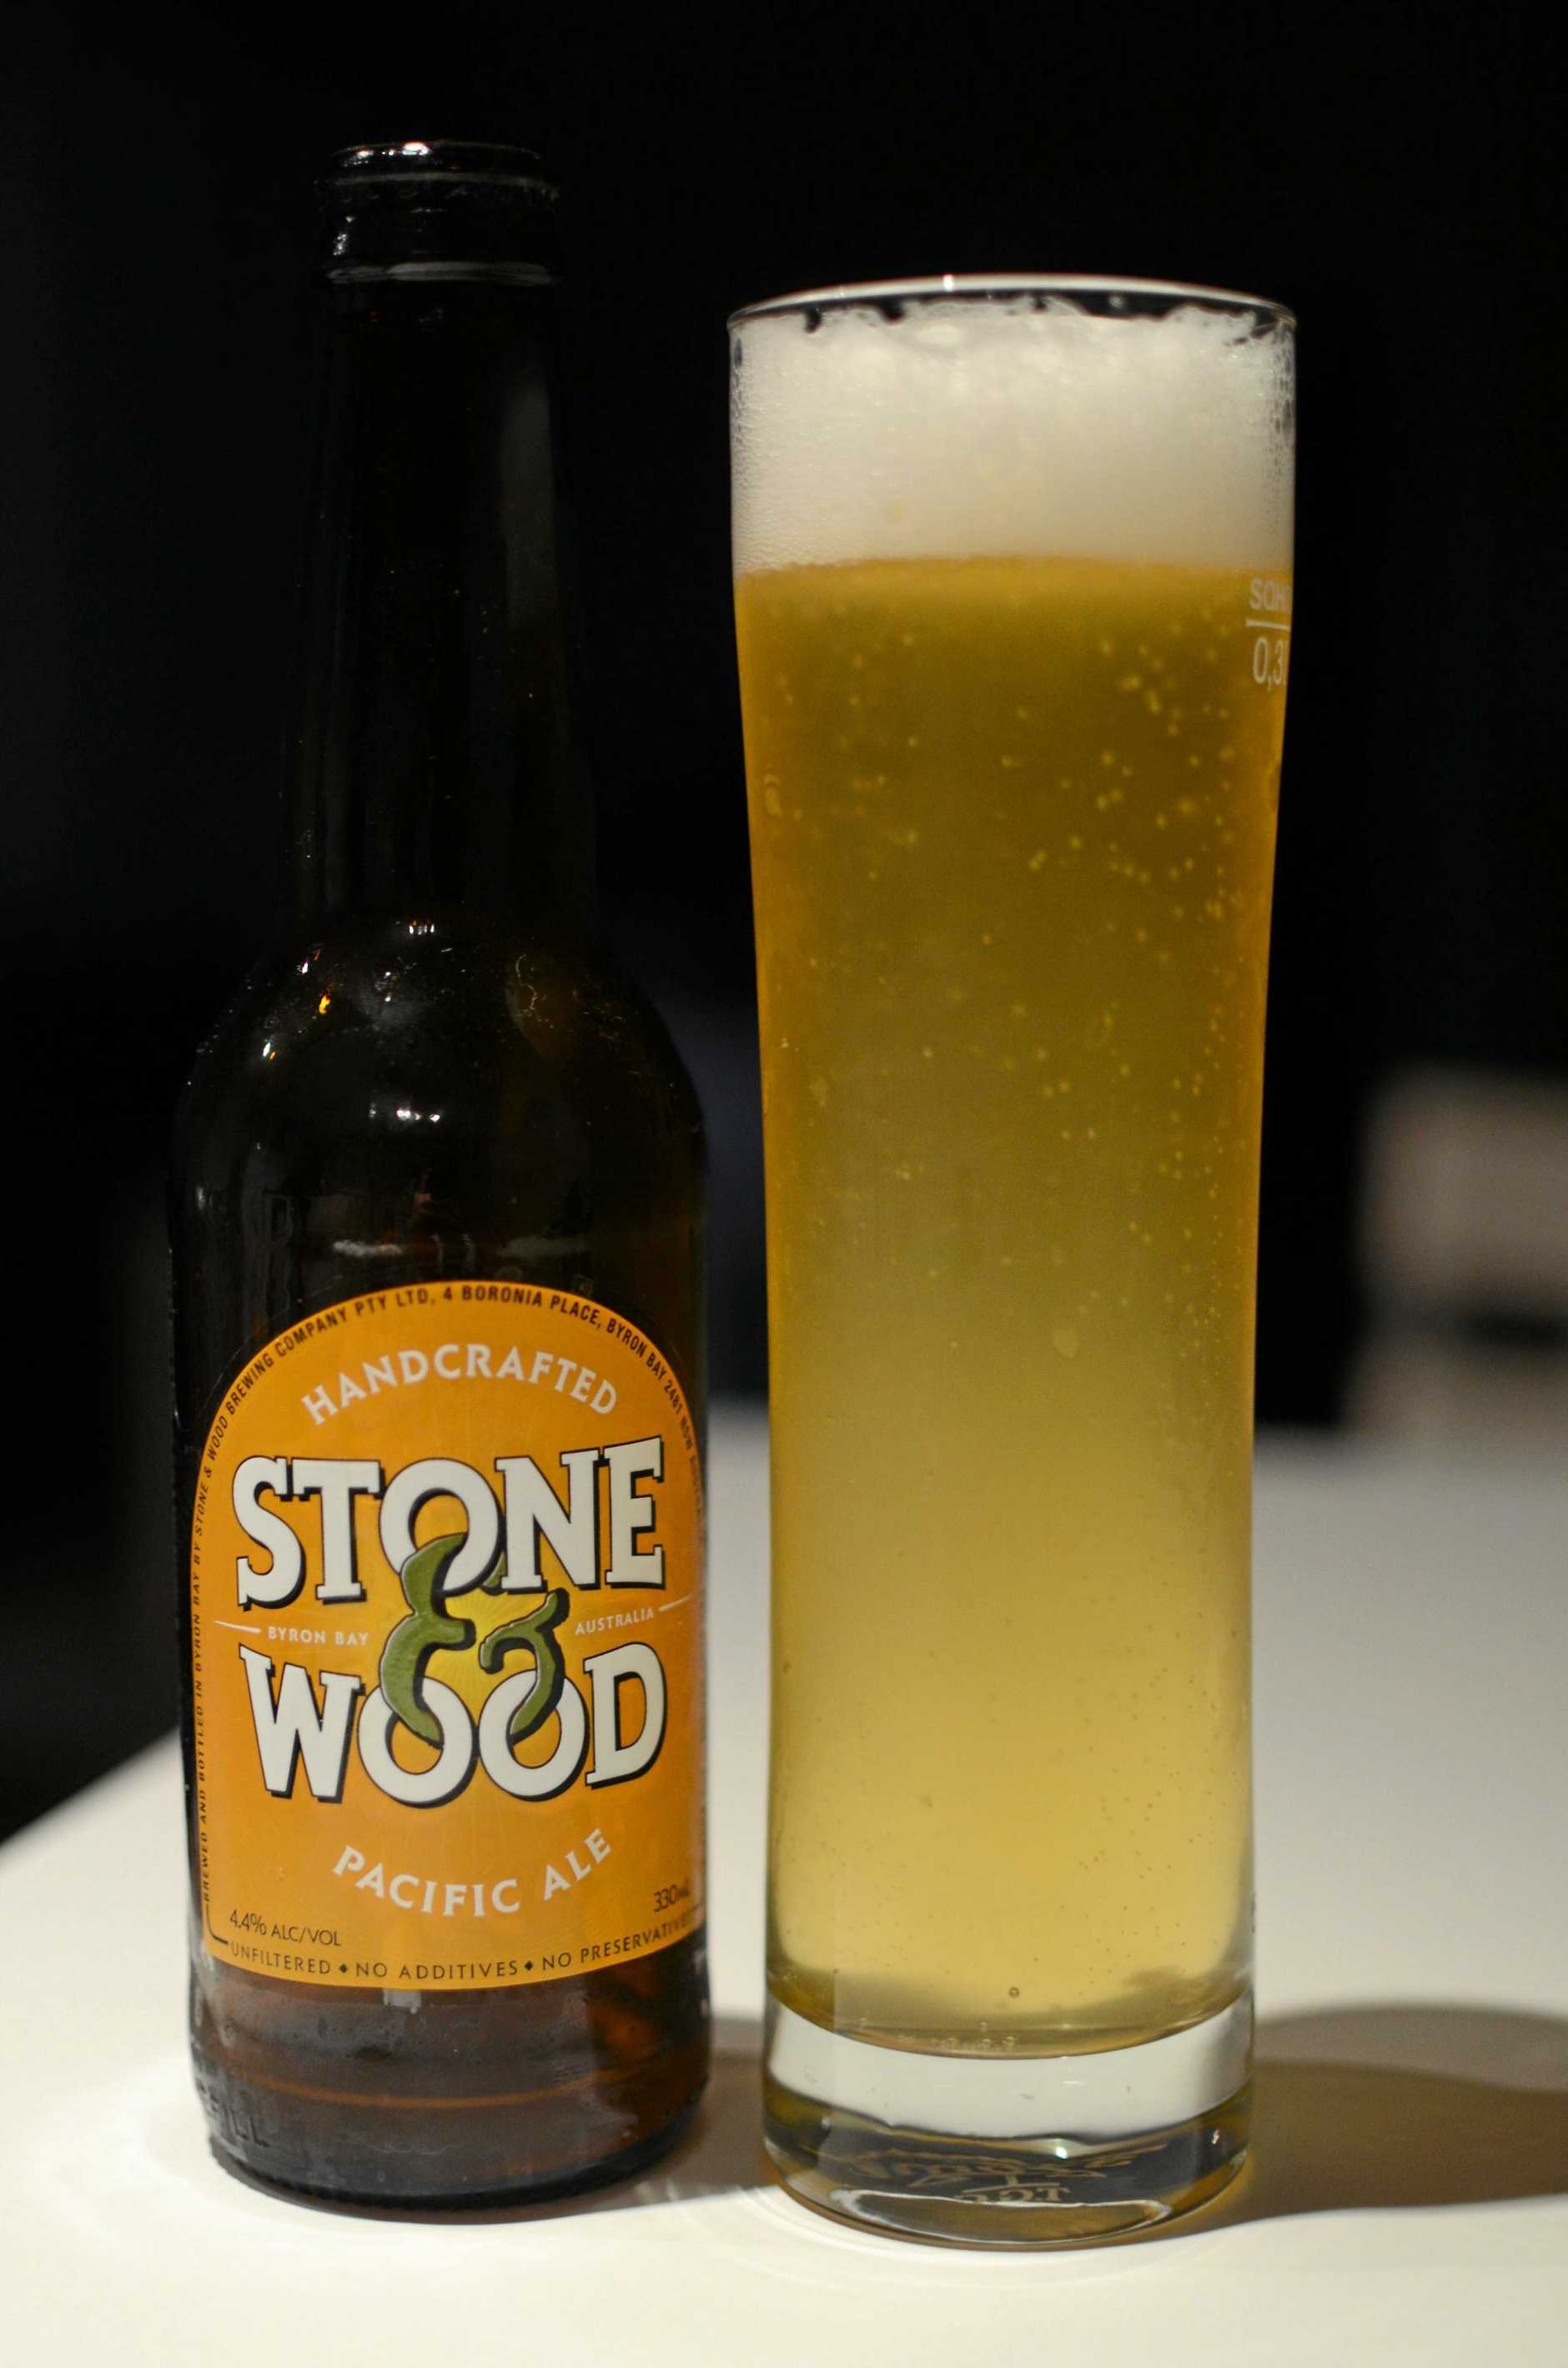 Stone and Wood Pacific Ale.